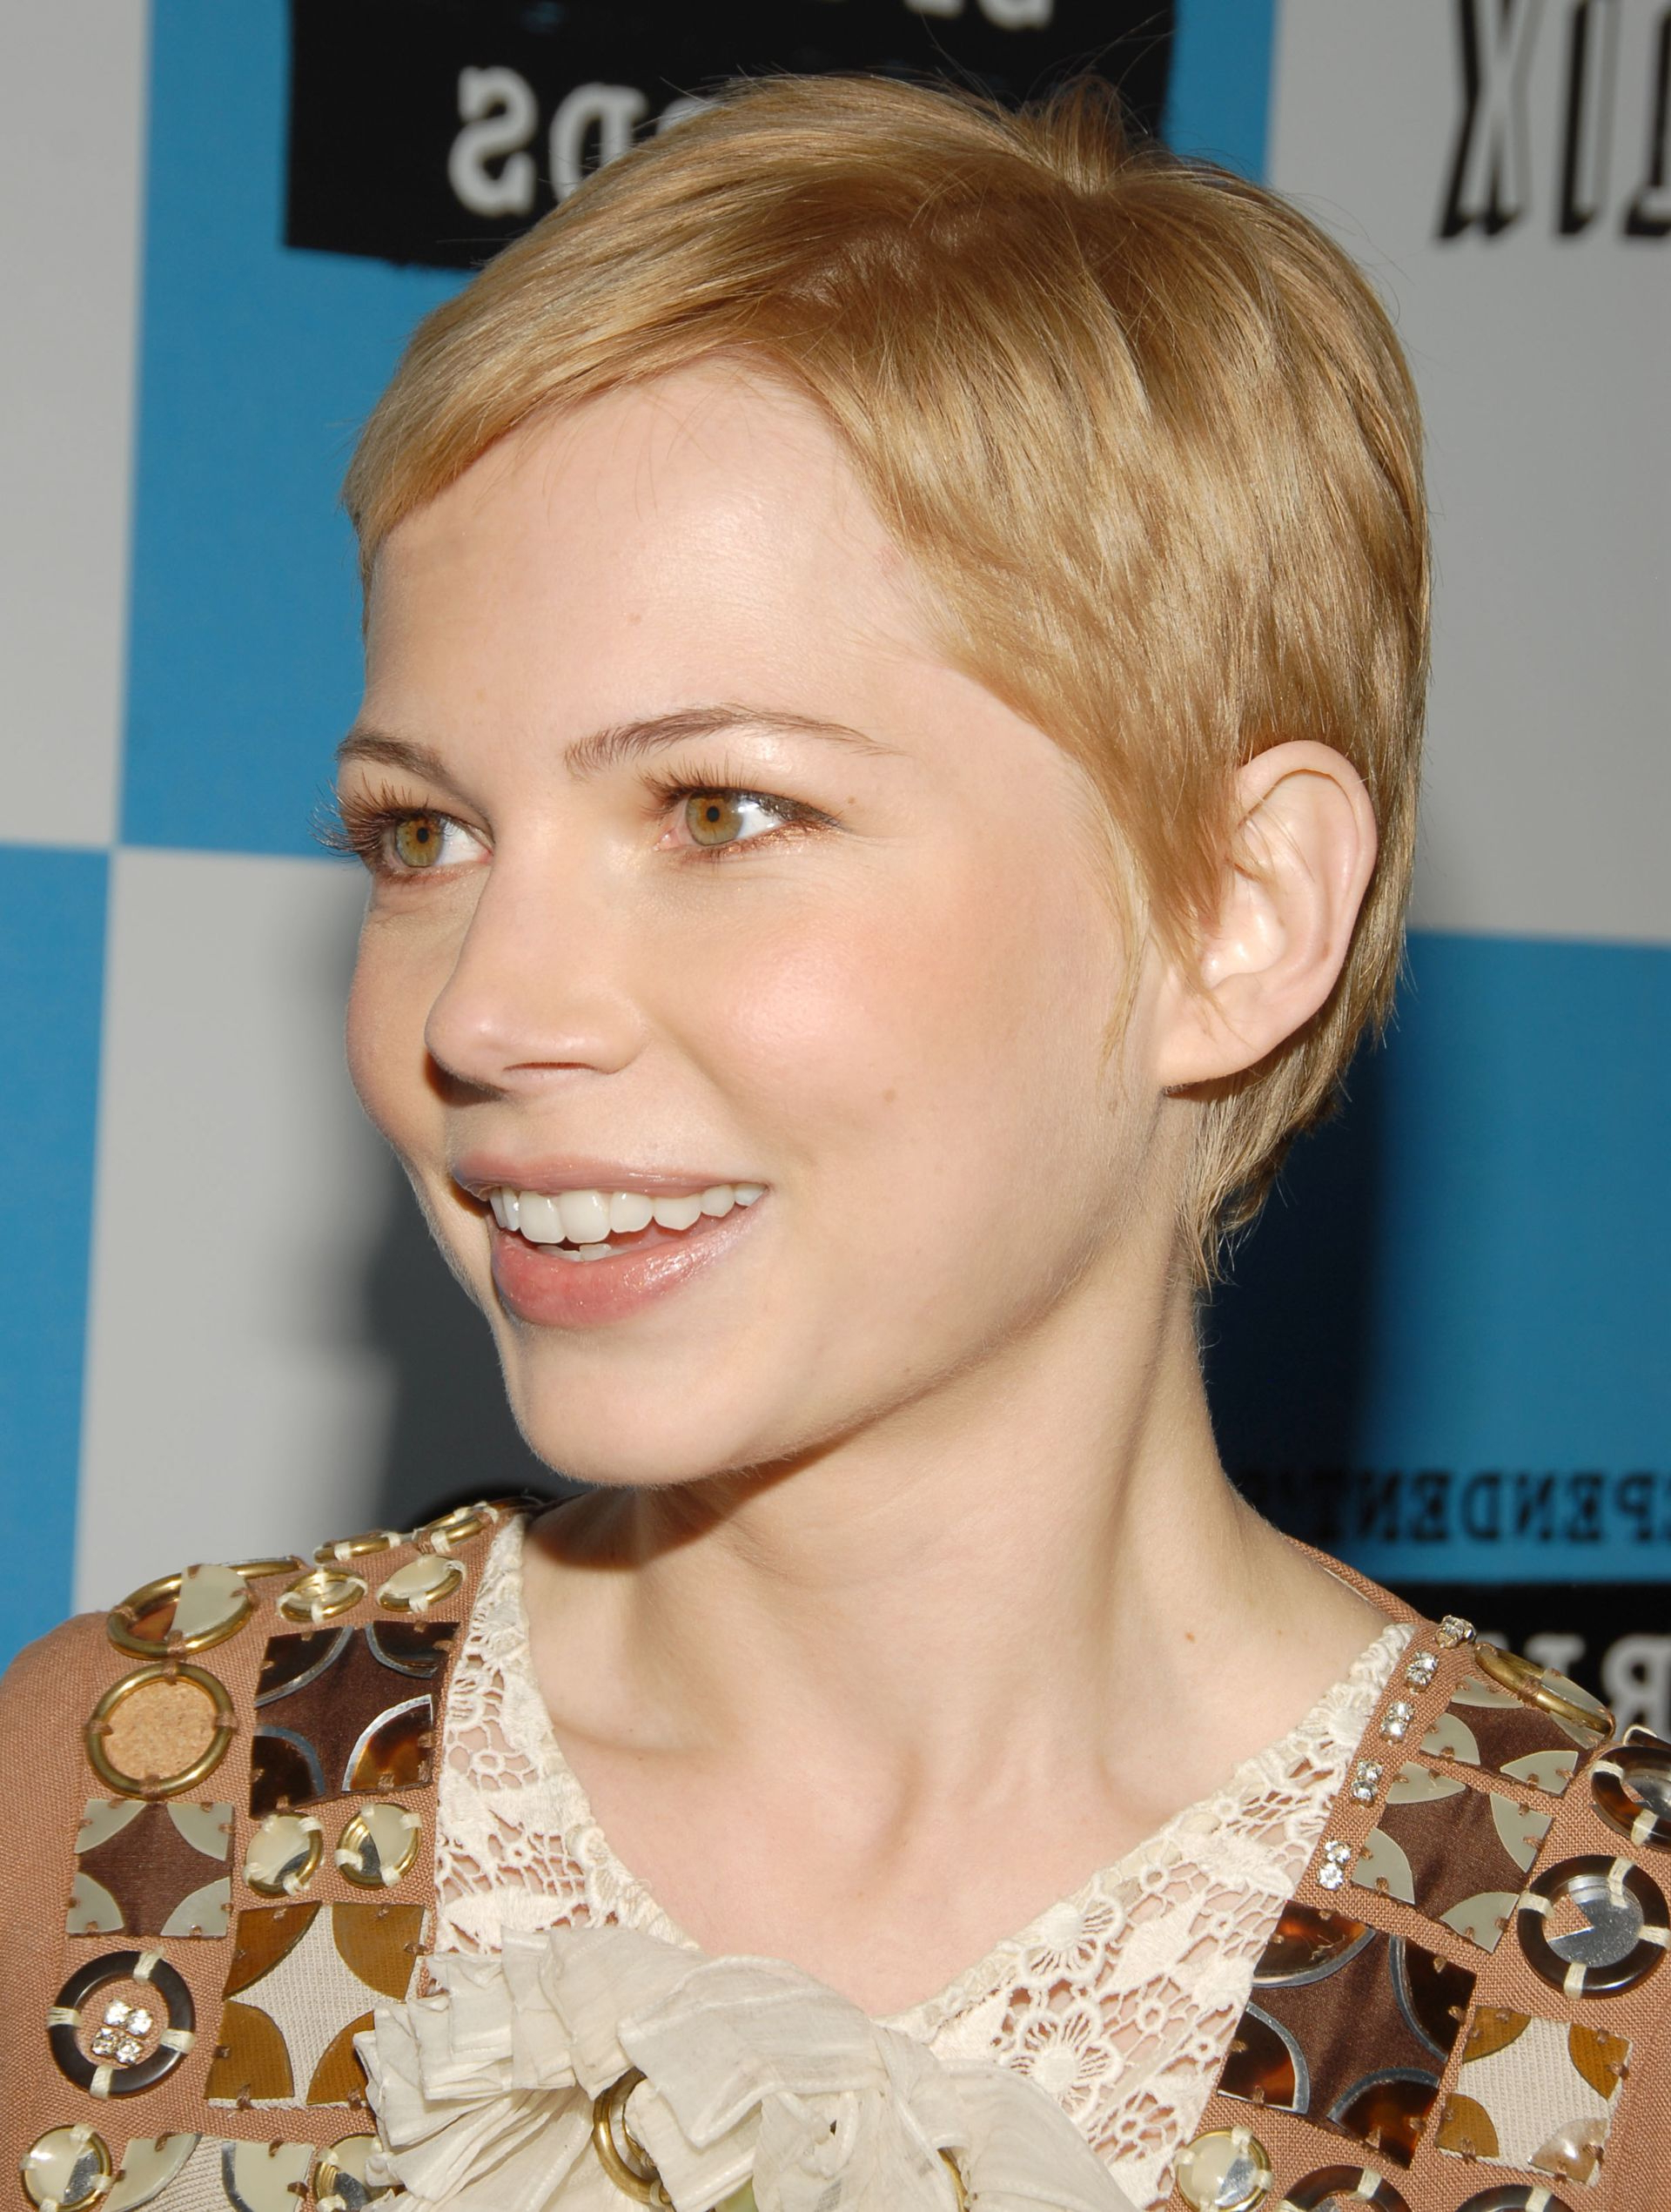 34 Best Pixie Cuts Of All Time – Iconic Pixie Haircut Ideas Inside Disheveled Blonde Pixie Haircuts With Elongated Bangs (View 10 of 20)